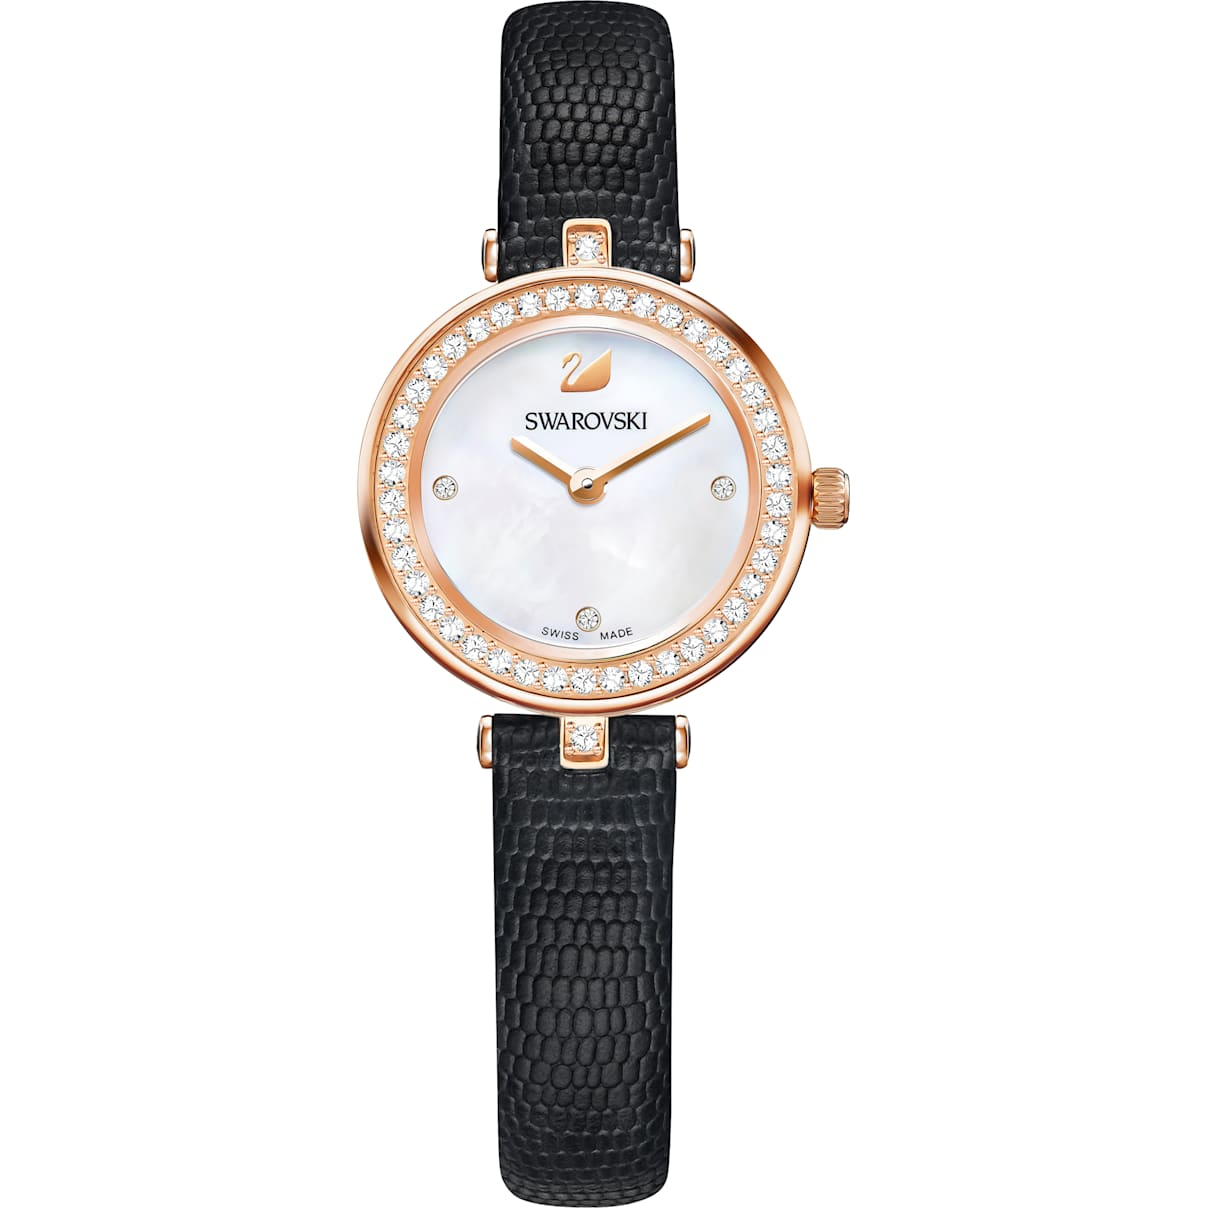 Swarovski Aila Dressy Mini Watch, Leather strap, Black, Rose-gold tone PVD